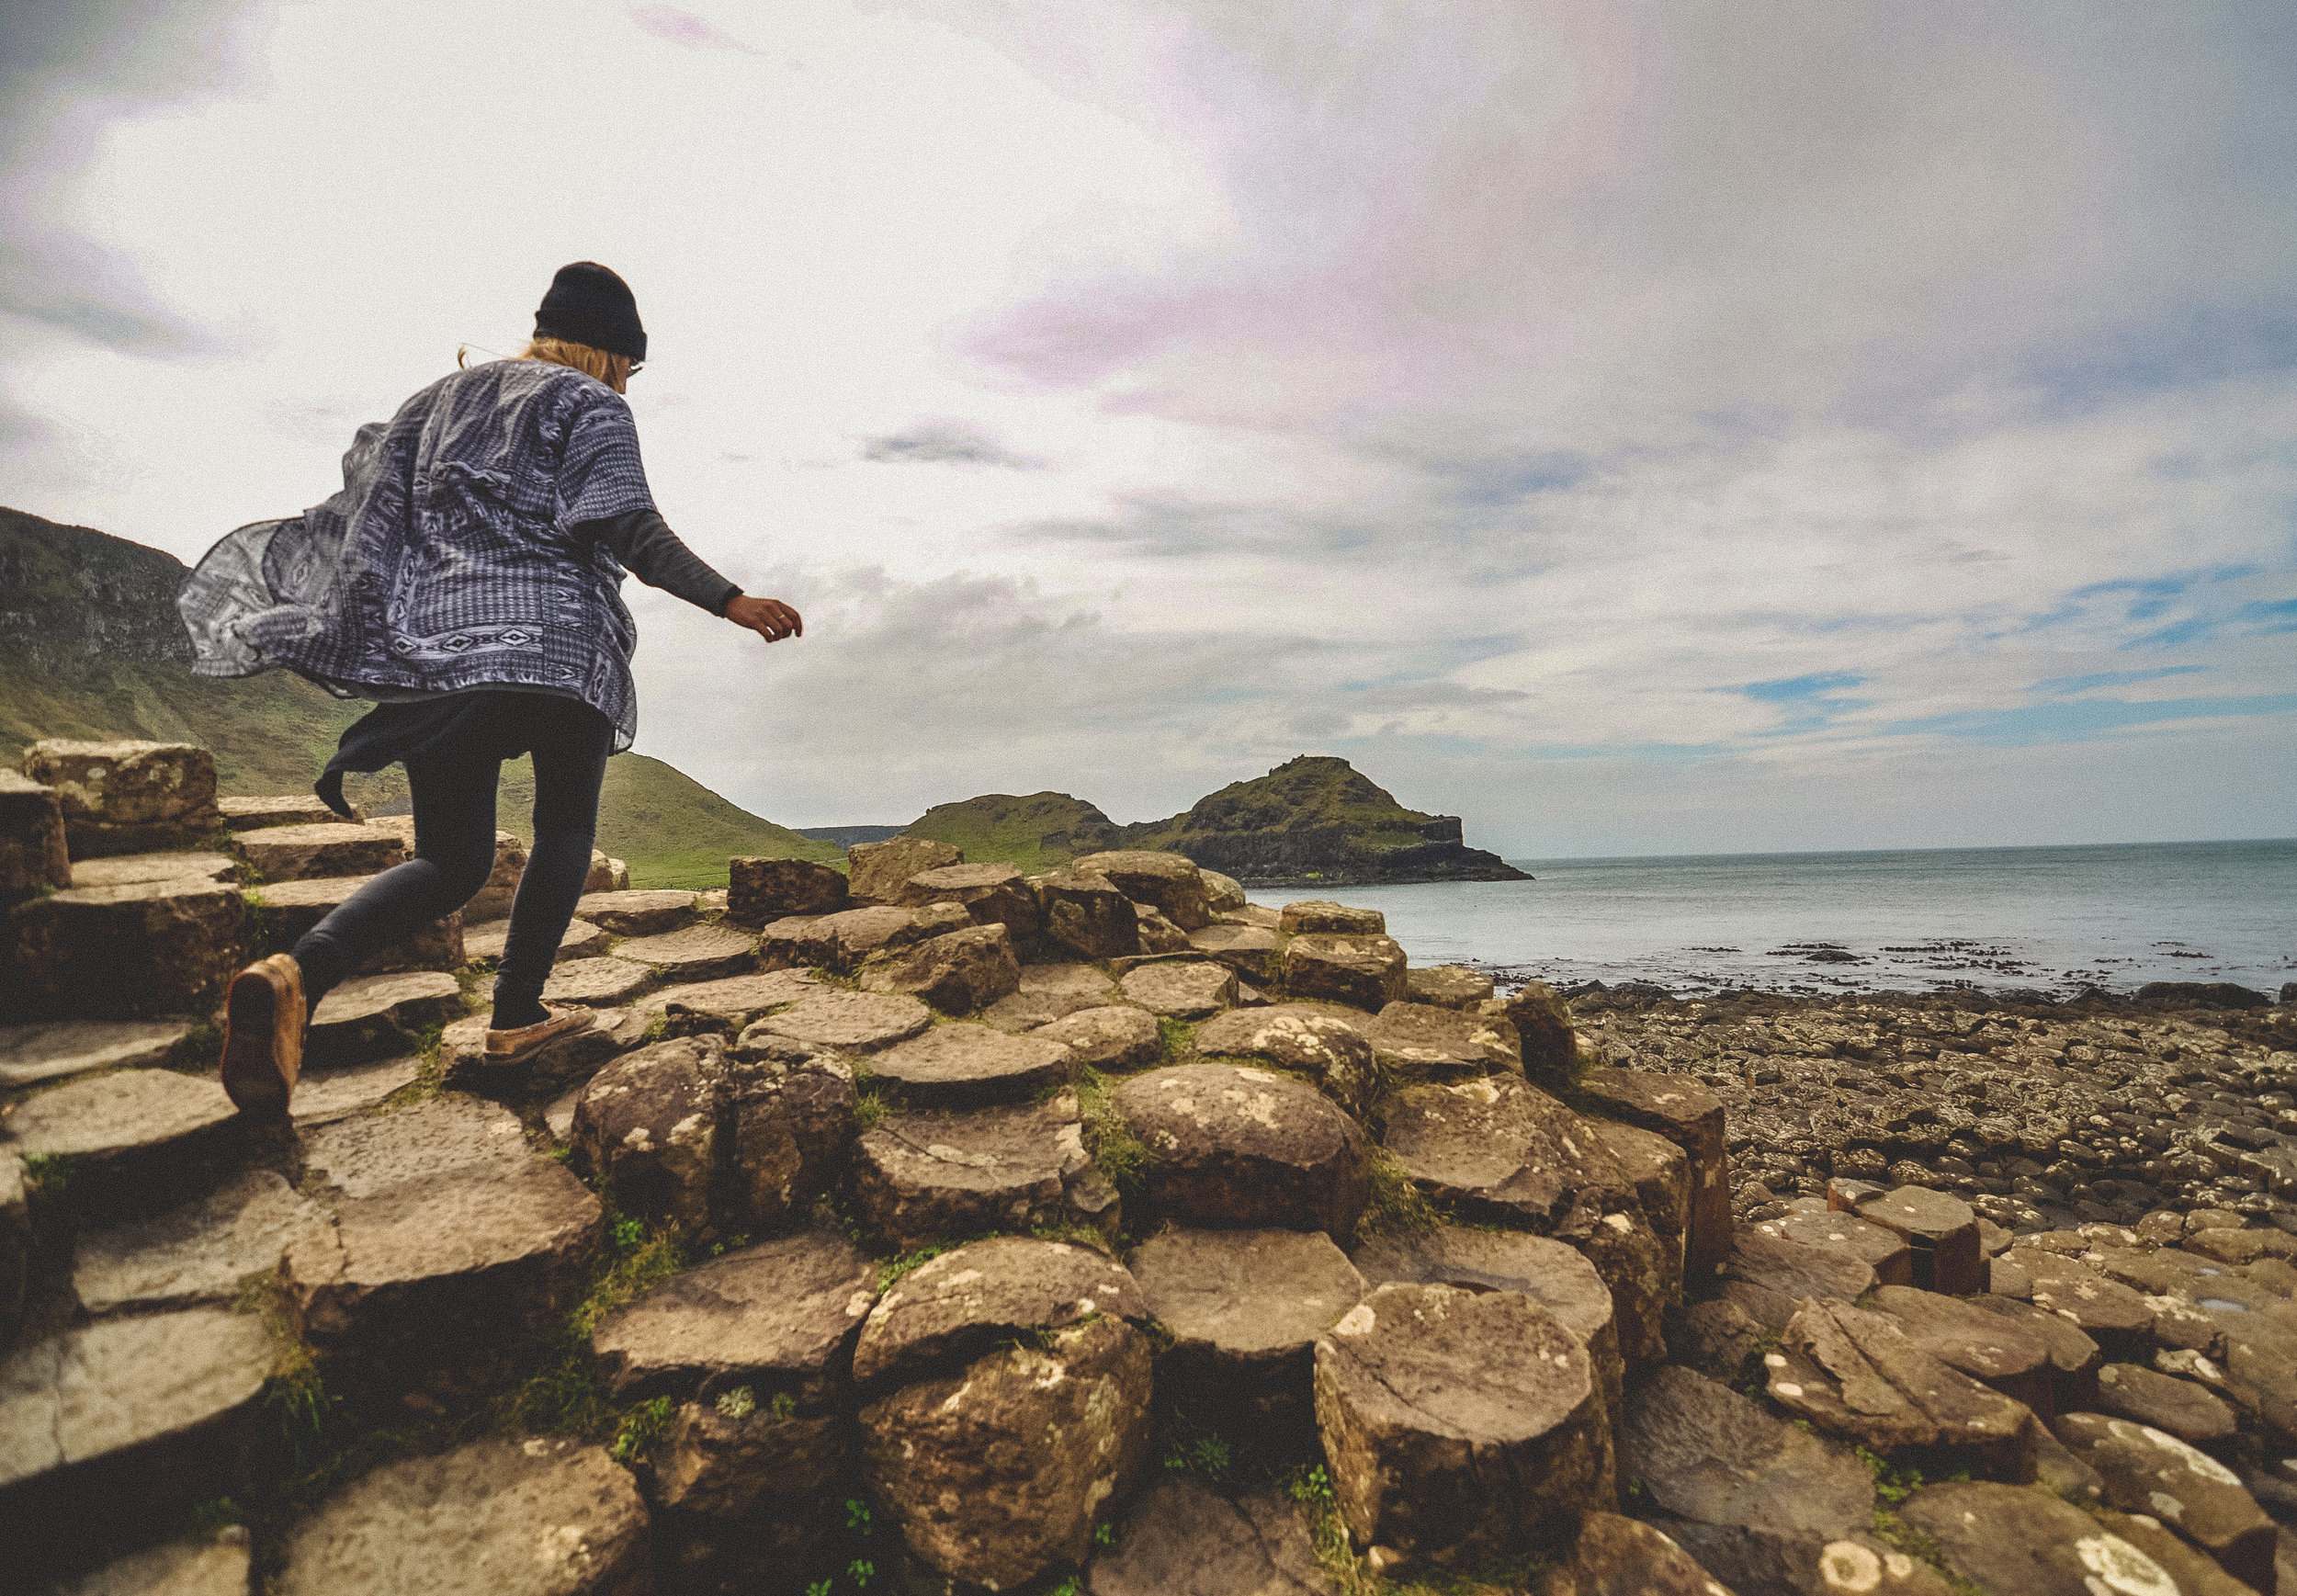 Solo travel is empowering! Ireland